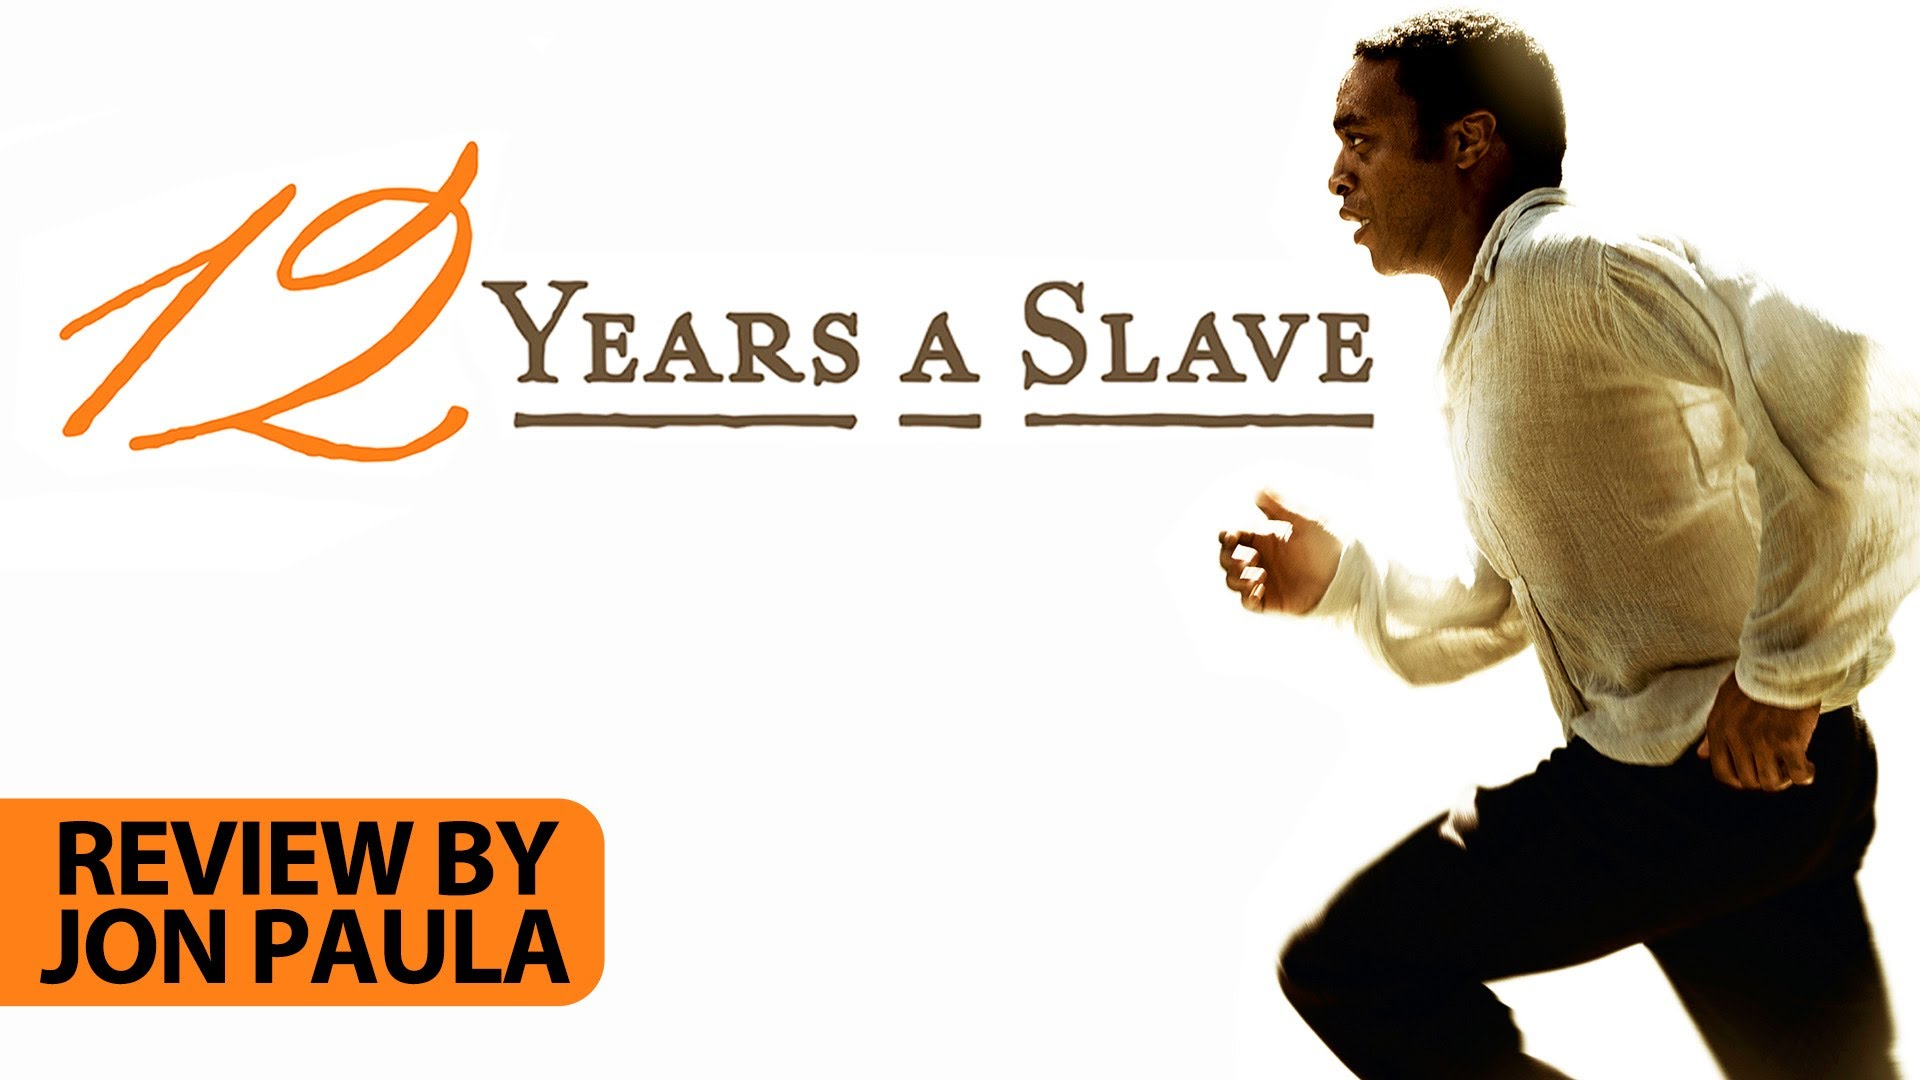 Images of 12 Years A Slave | 1920x1080